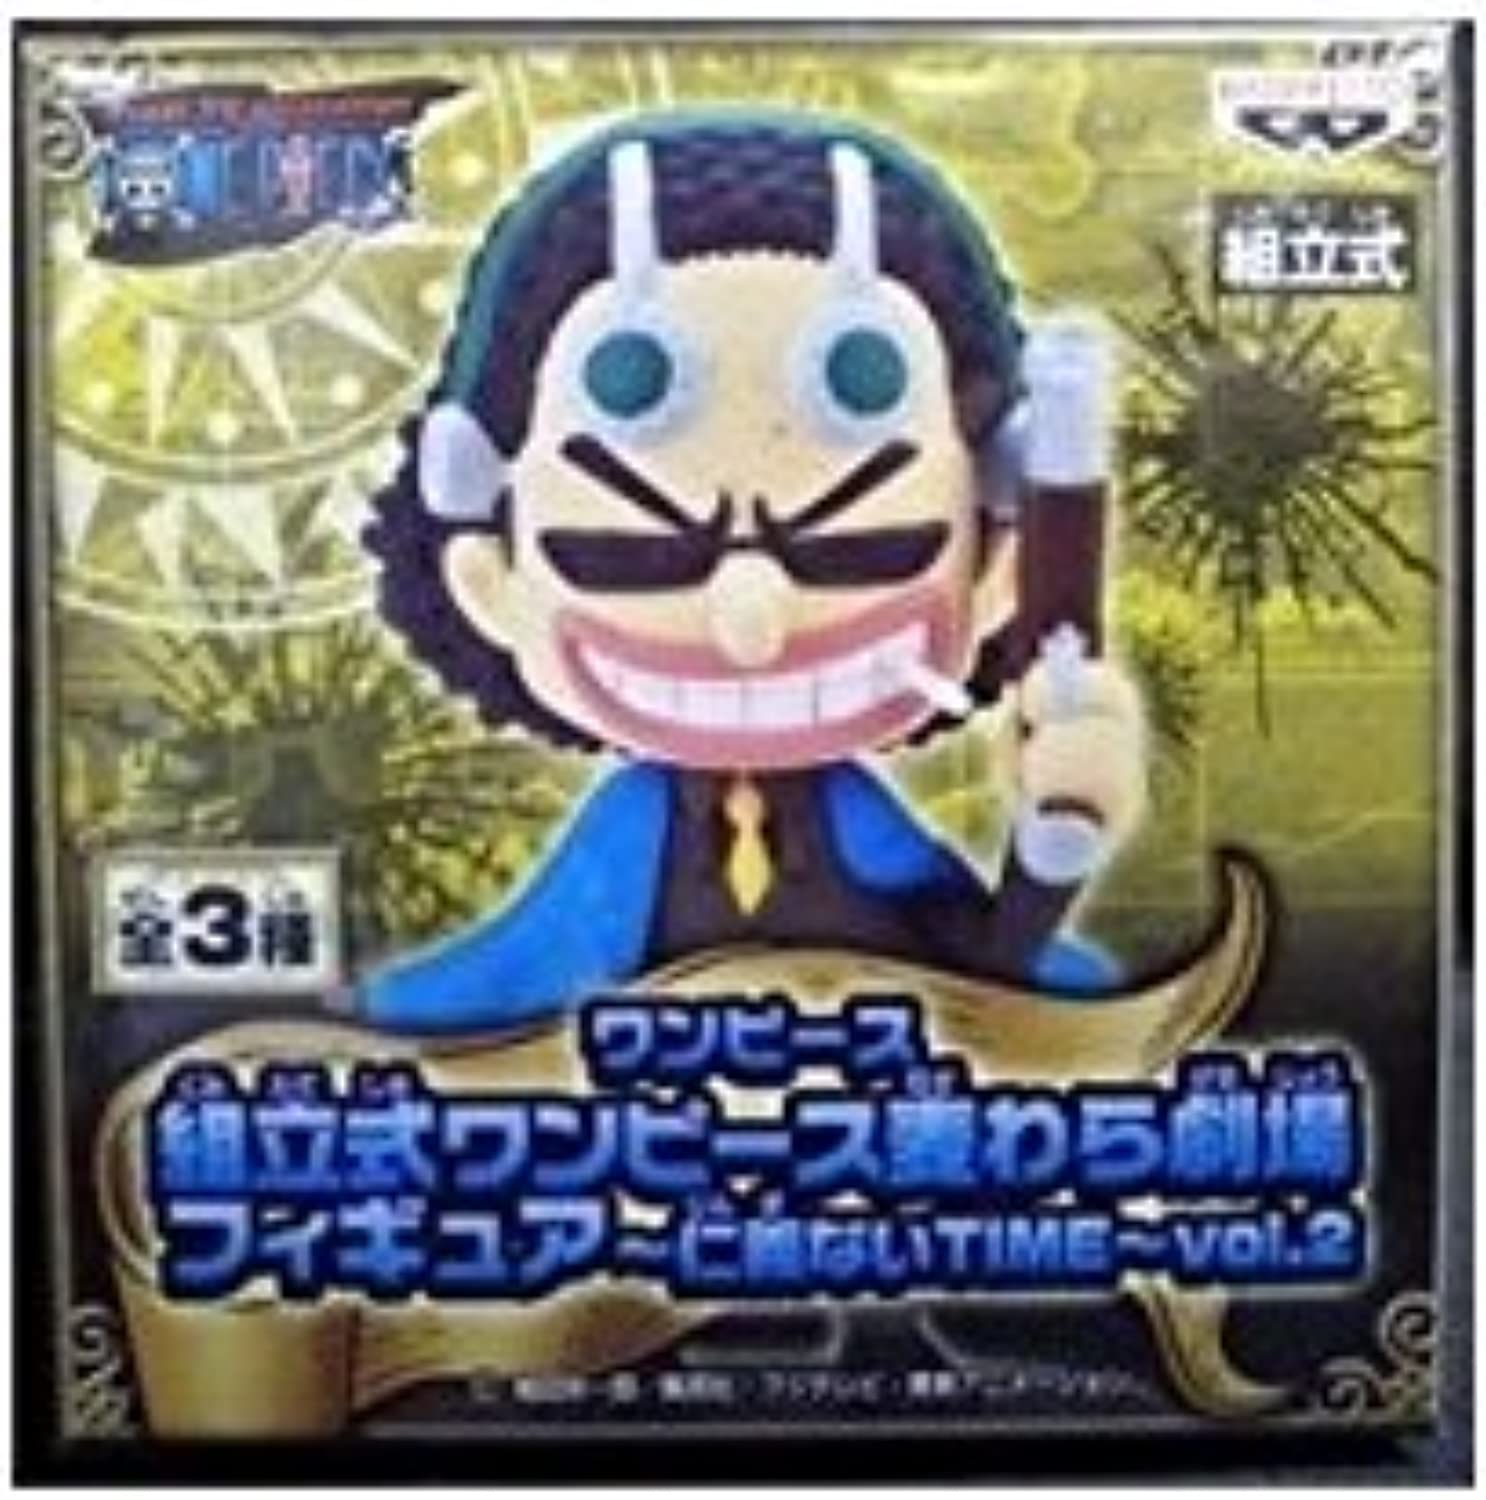 TIME  vol no One Piece One Piece Theater Straw figure  humanity and justice. 2 Usotouya (japan import)